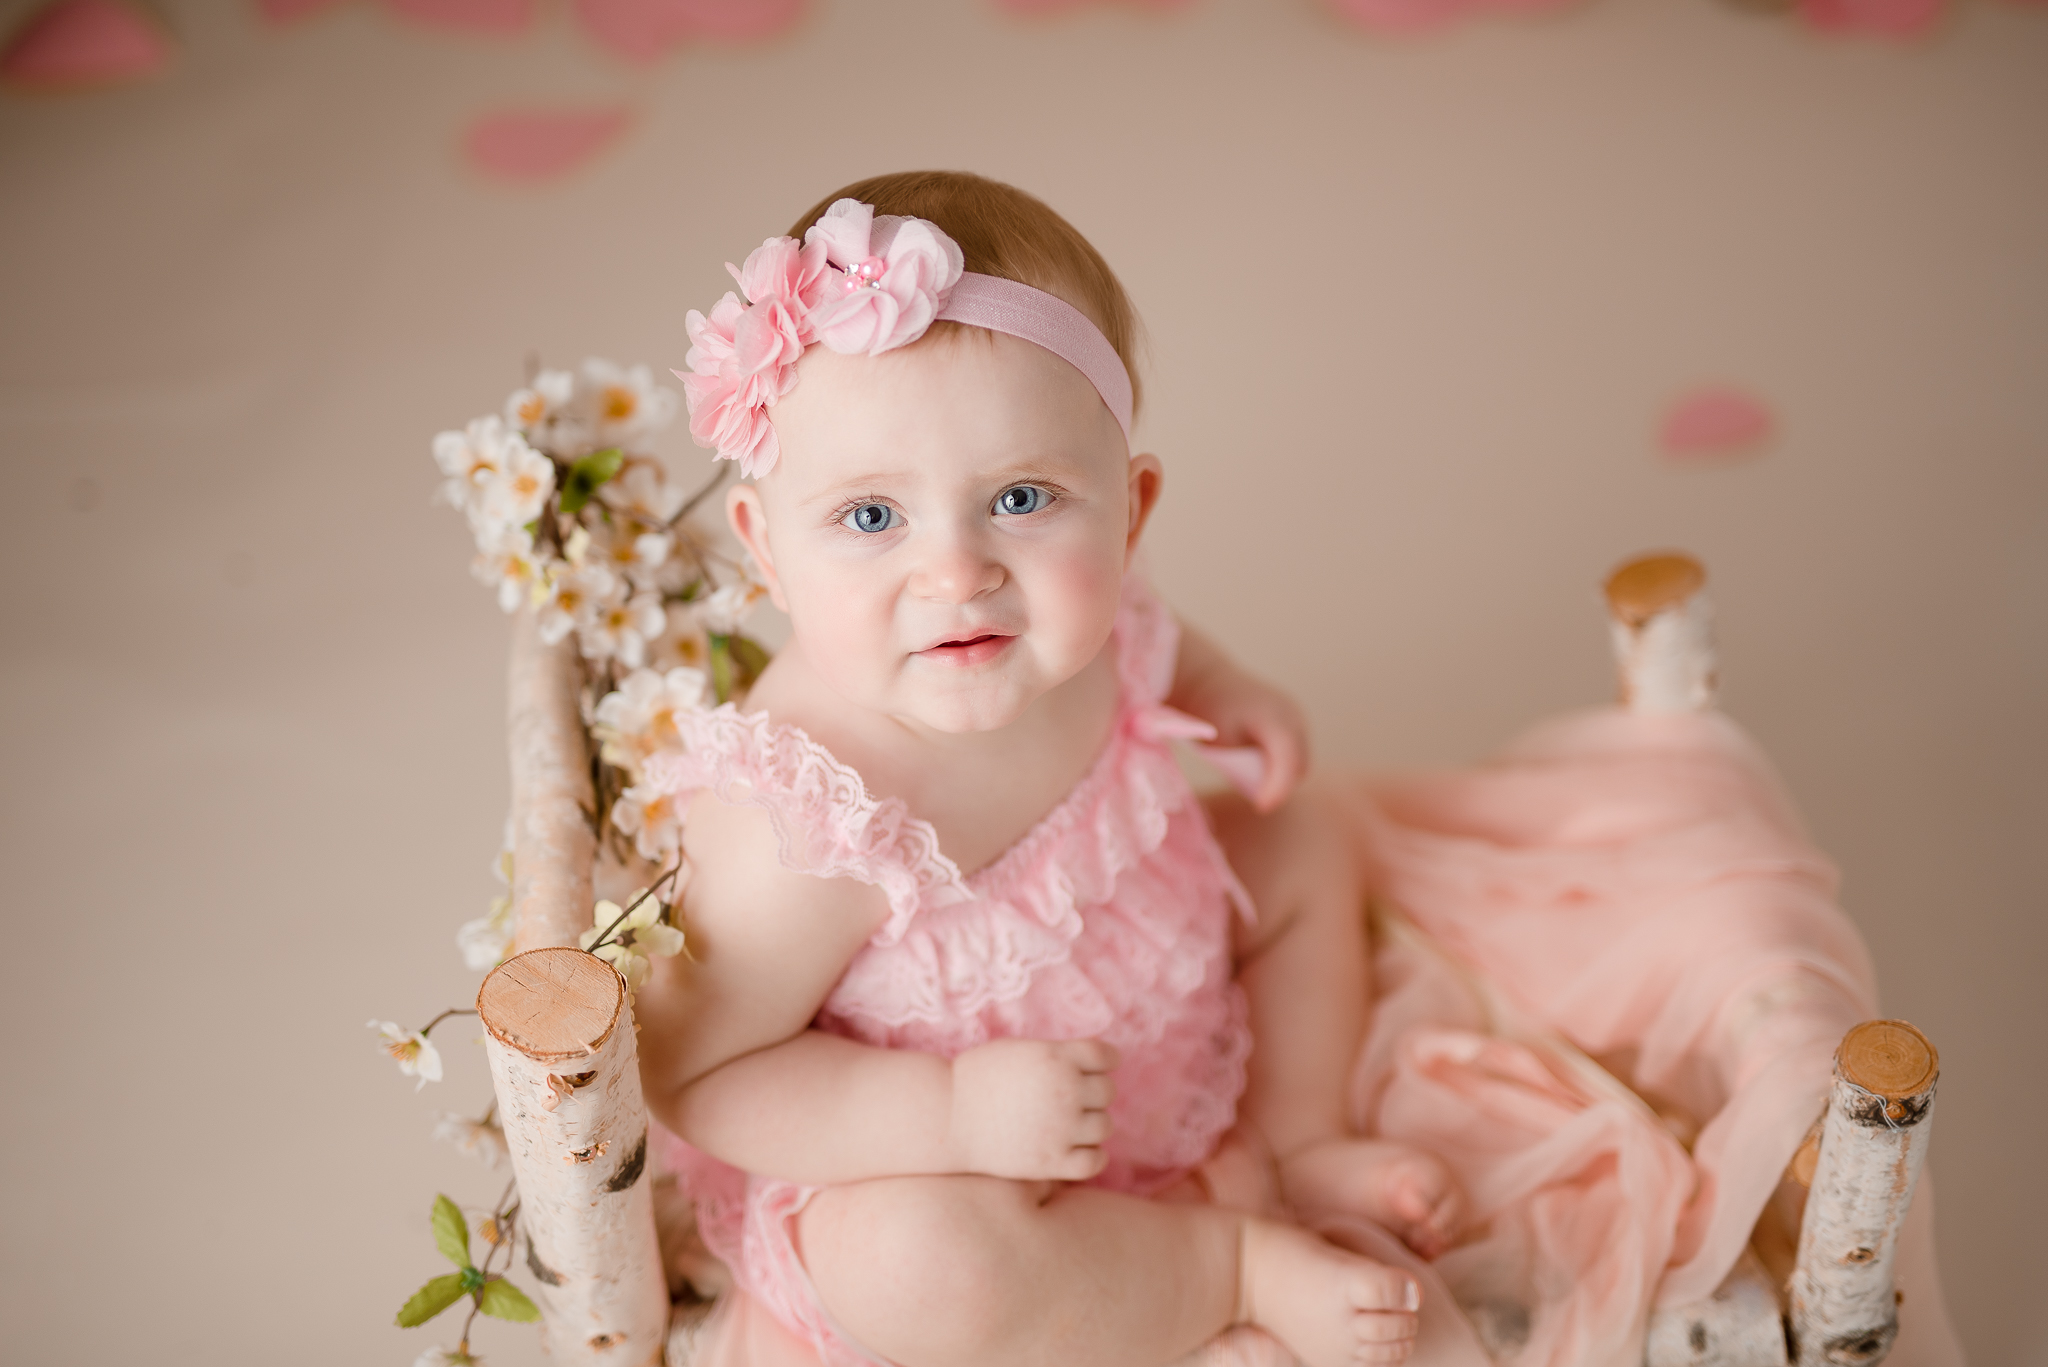 FirstBirthday137NaomiLuciennePhotography032019-Edit.jpg